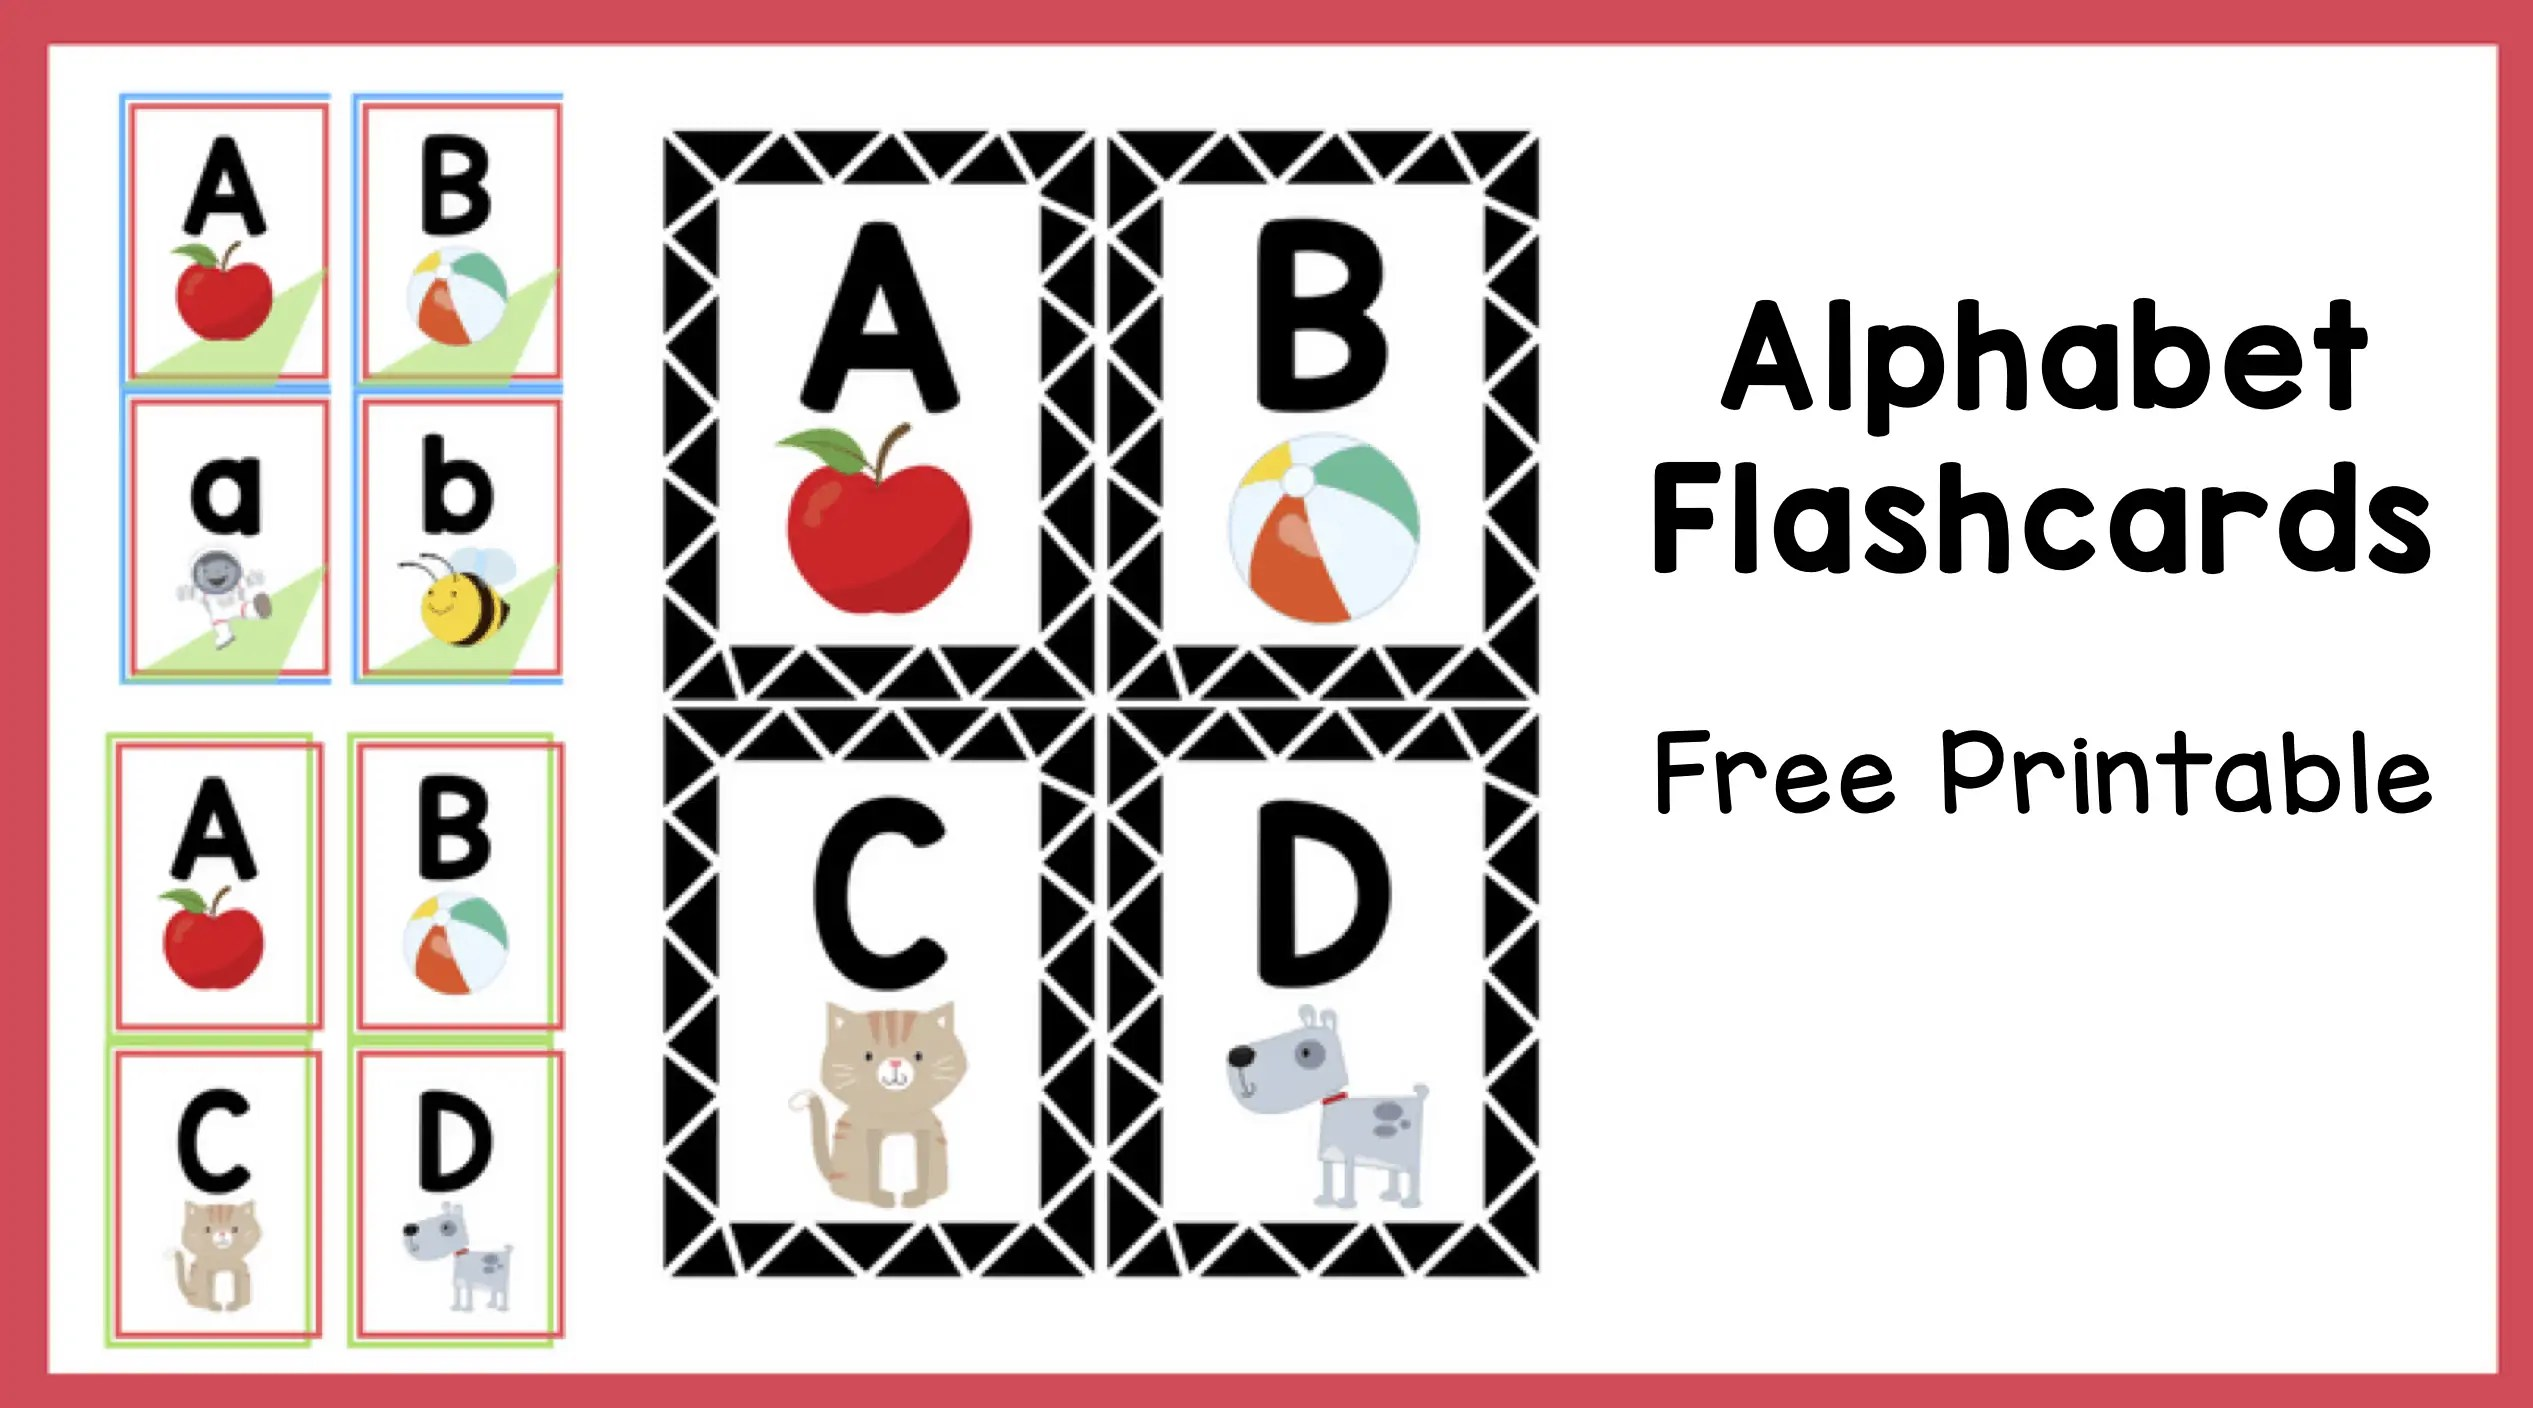 picture relating to Alphabet Flash Cards Printable Black and White known as Alphabet Flashcards Totally free Printable - The Coaching Aunt